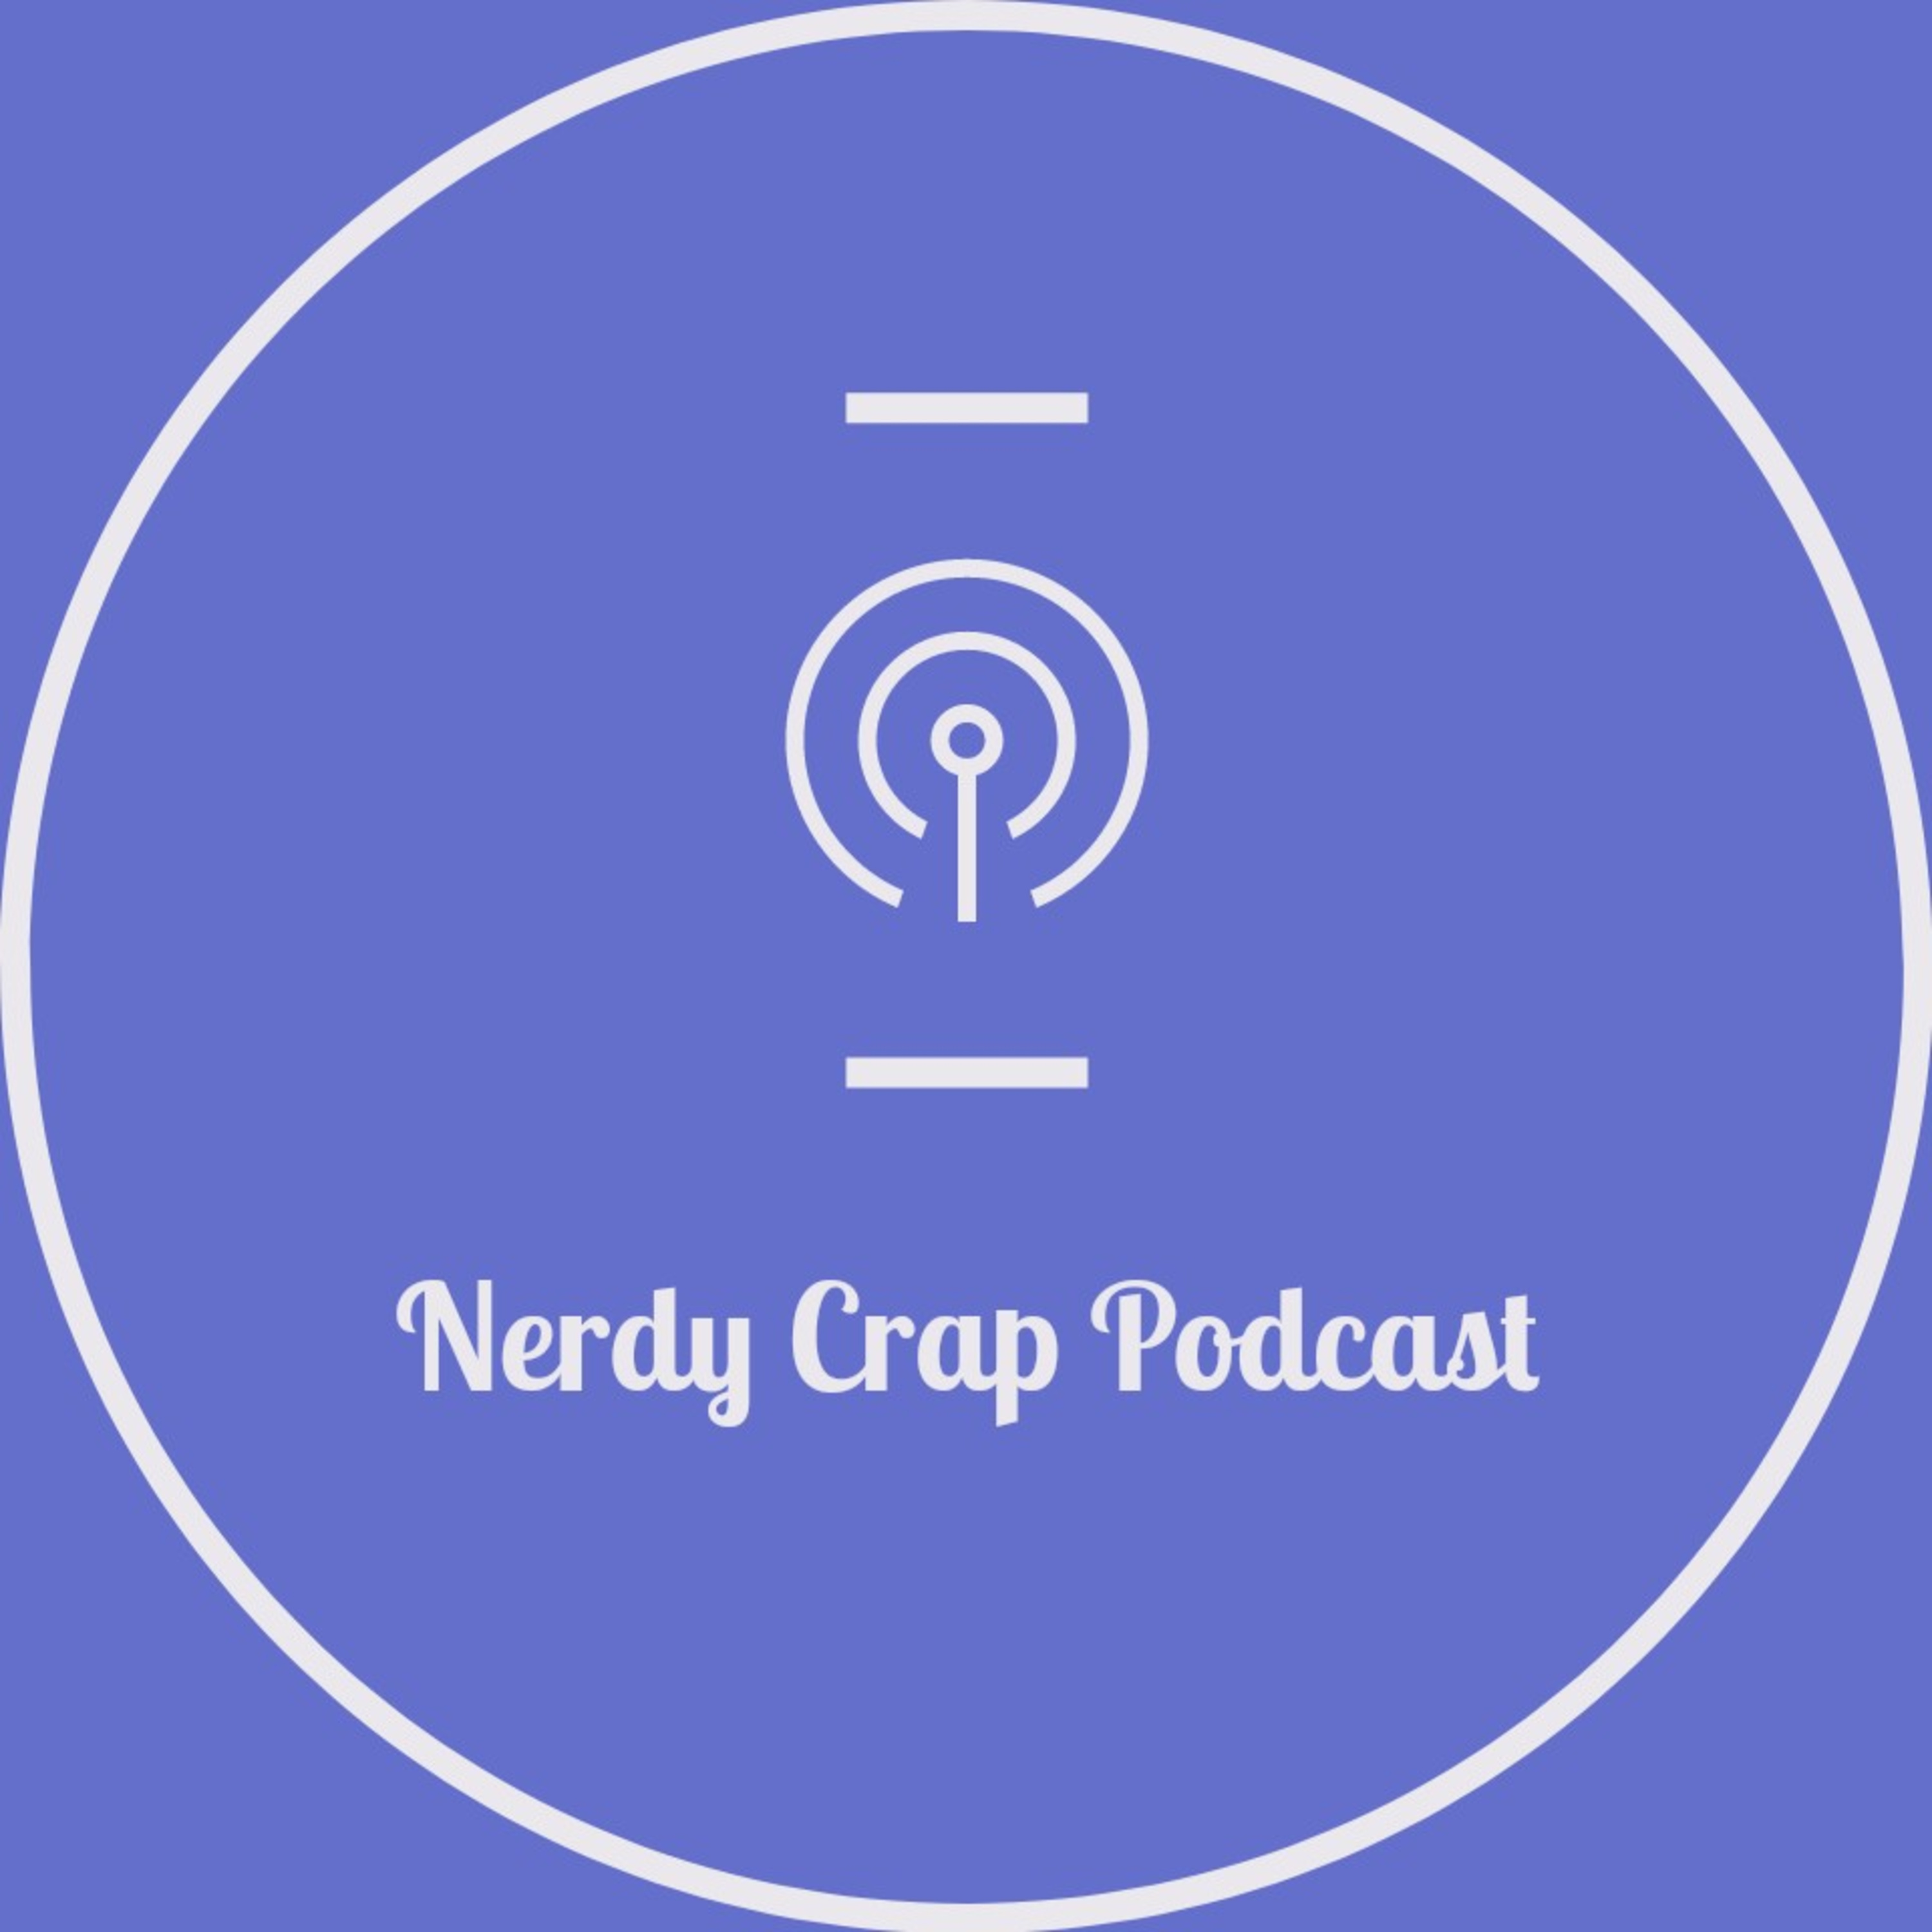 Nerdy crap podcast ep 1 - still working out the kinks